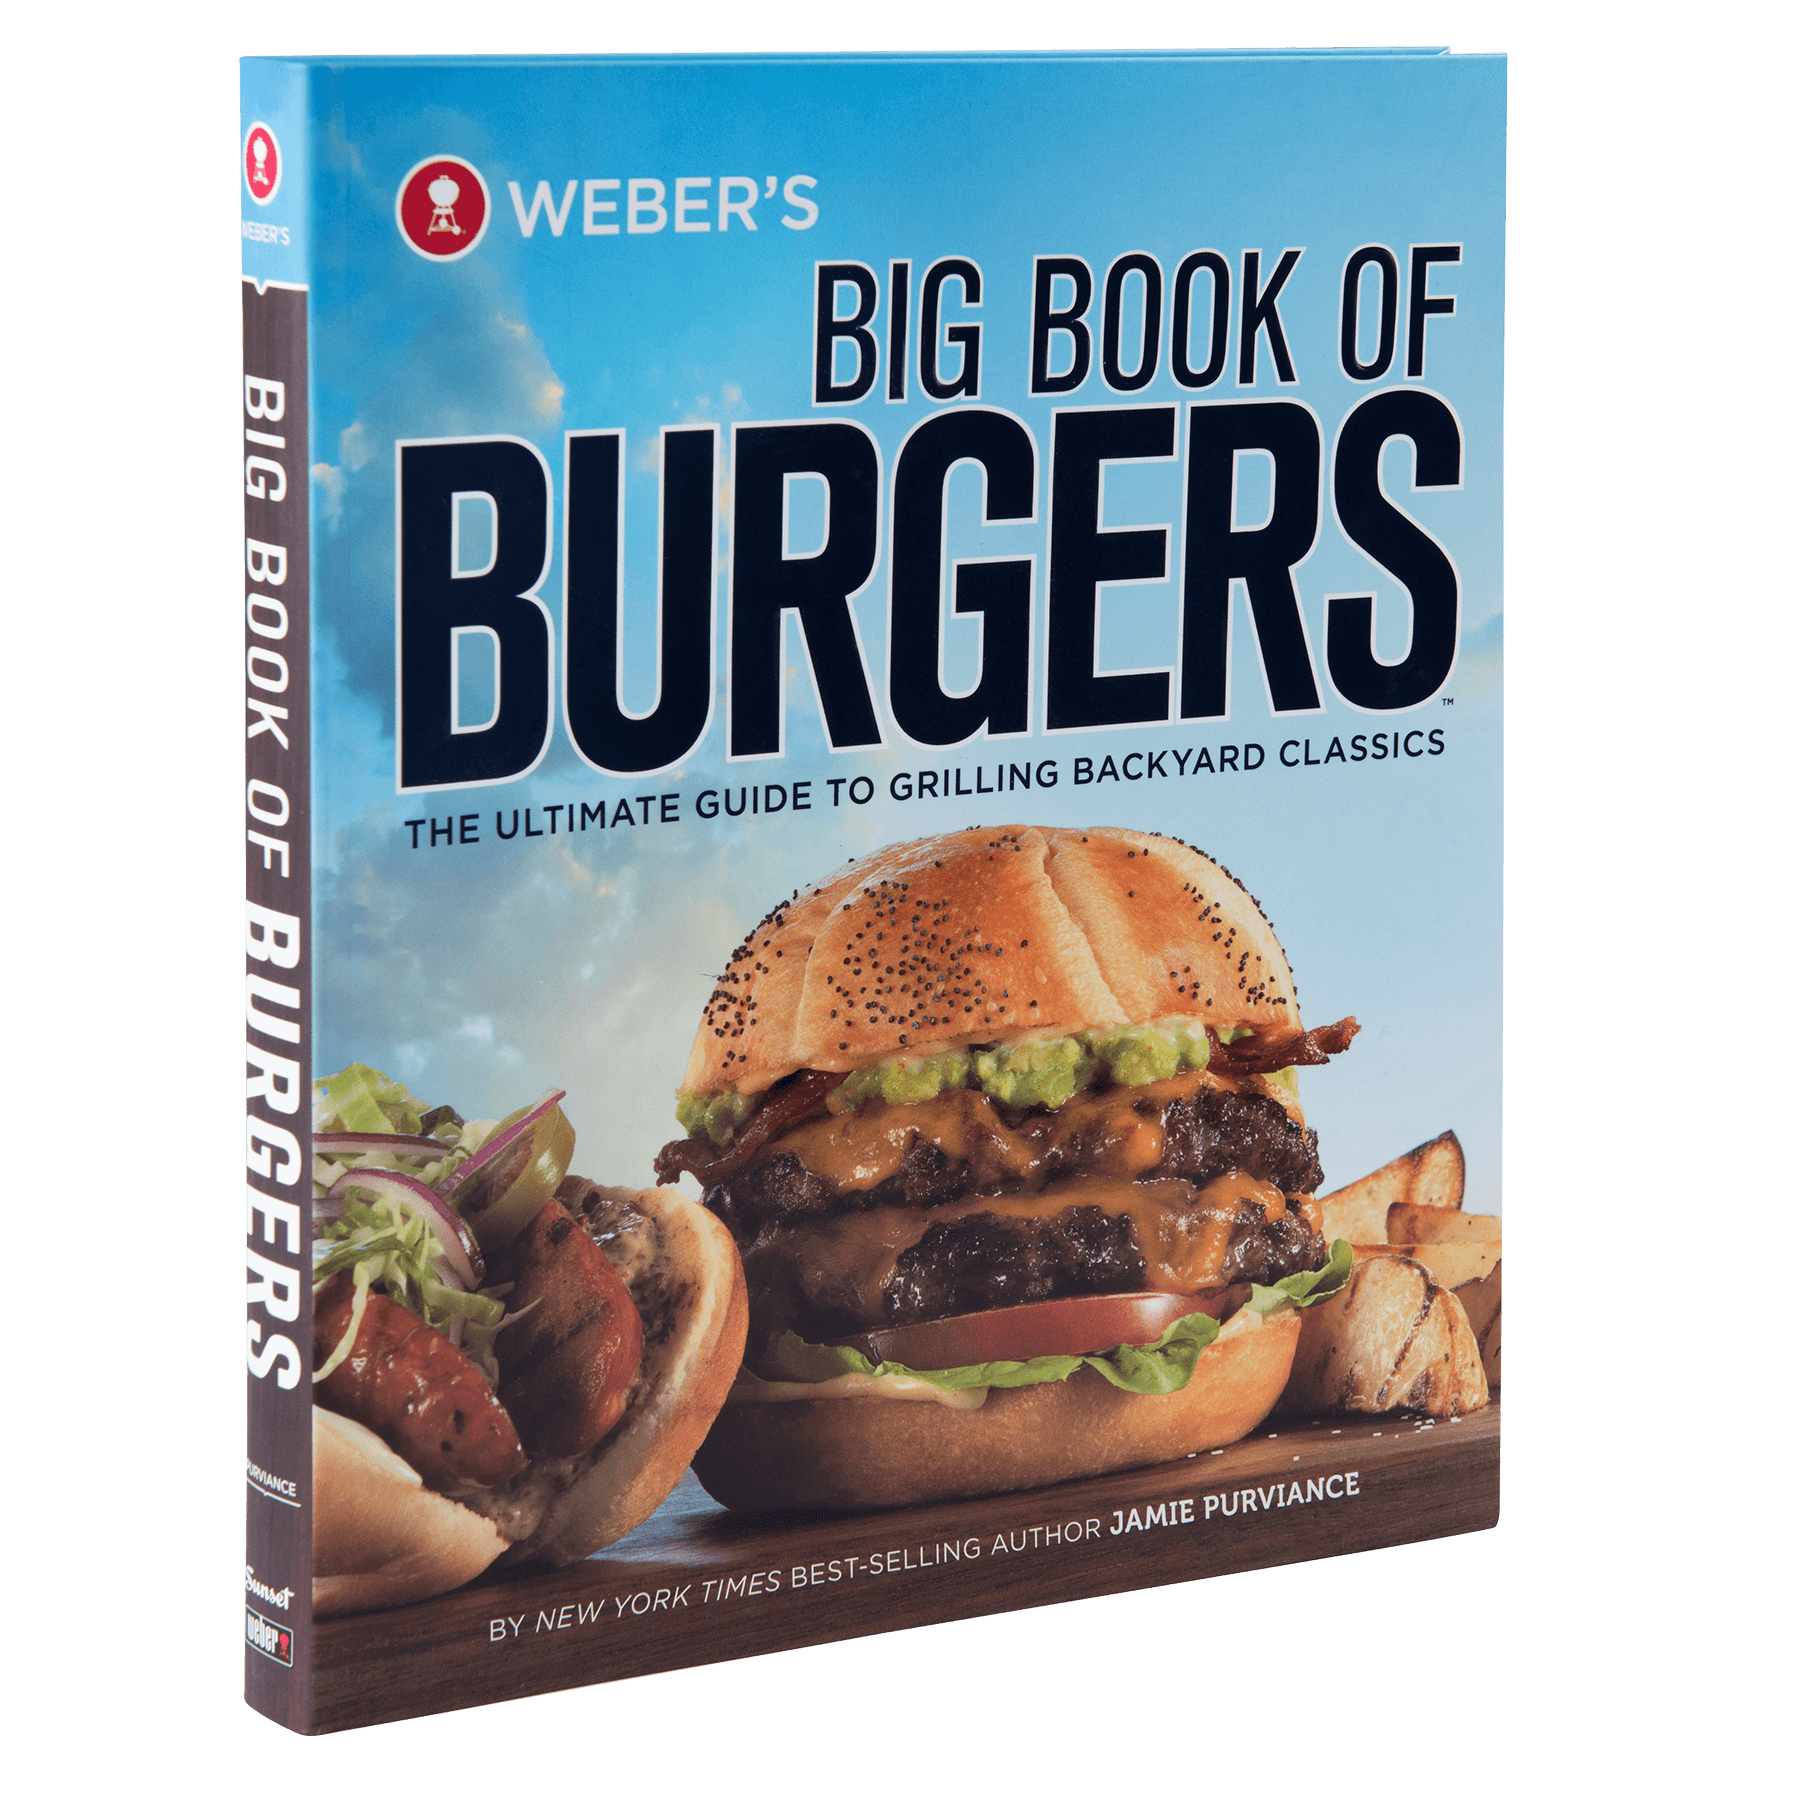 Weber's Big Book of Burgers